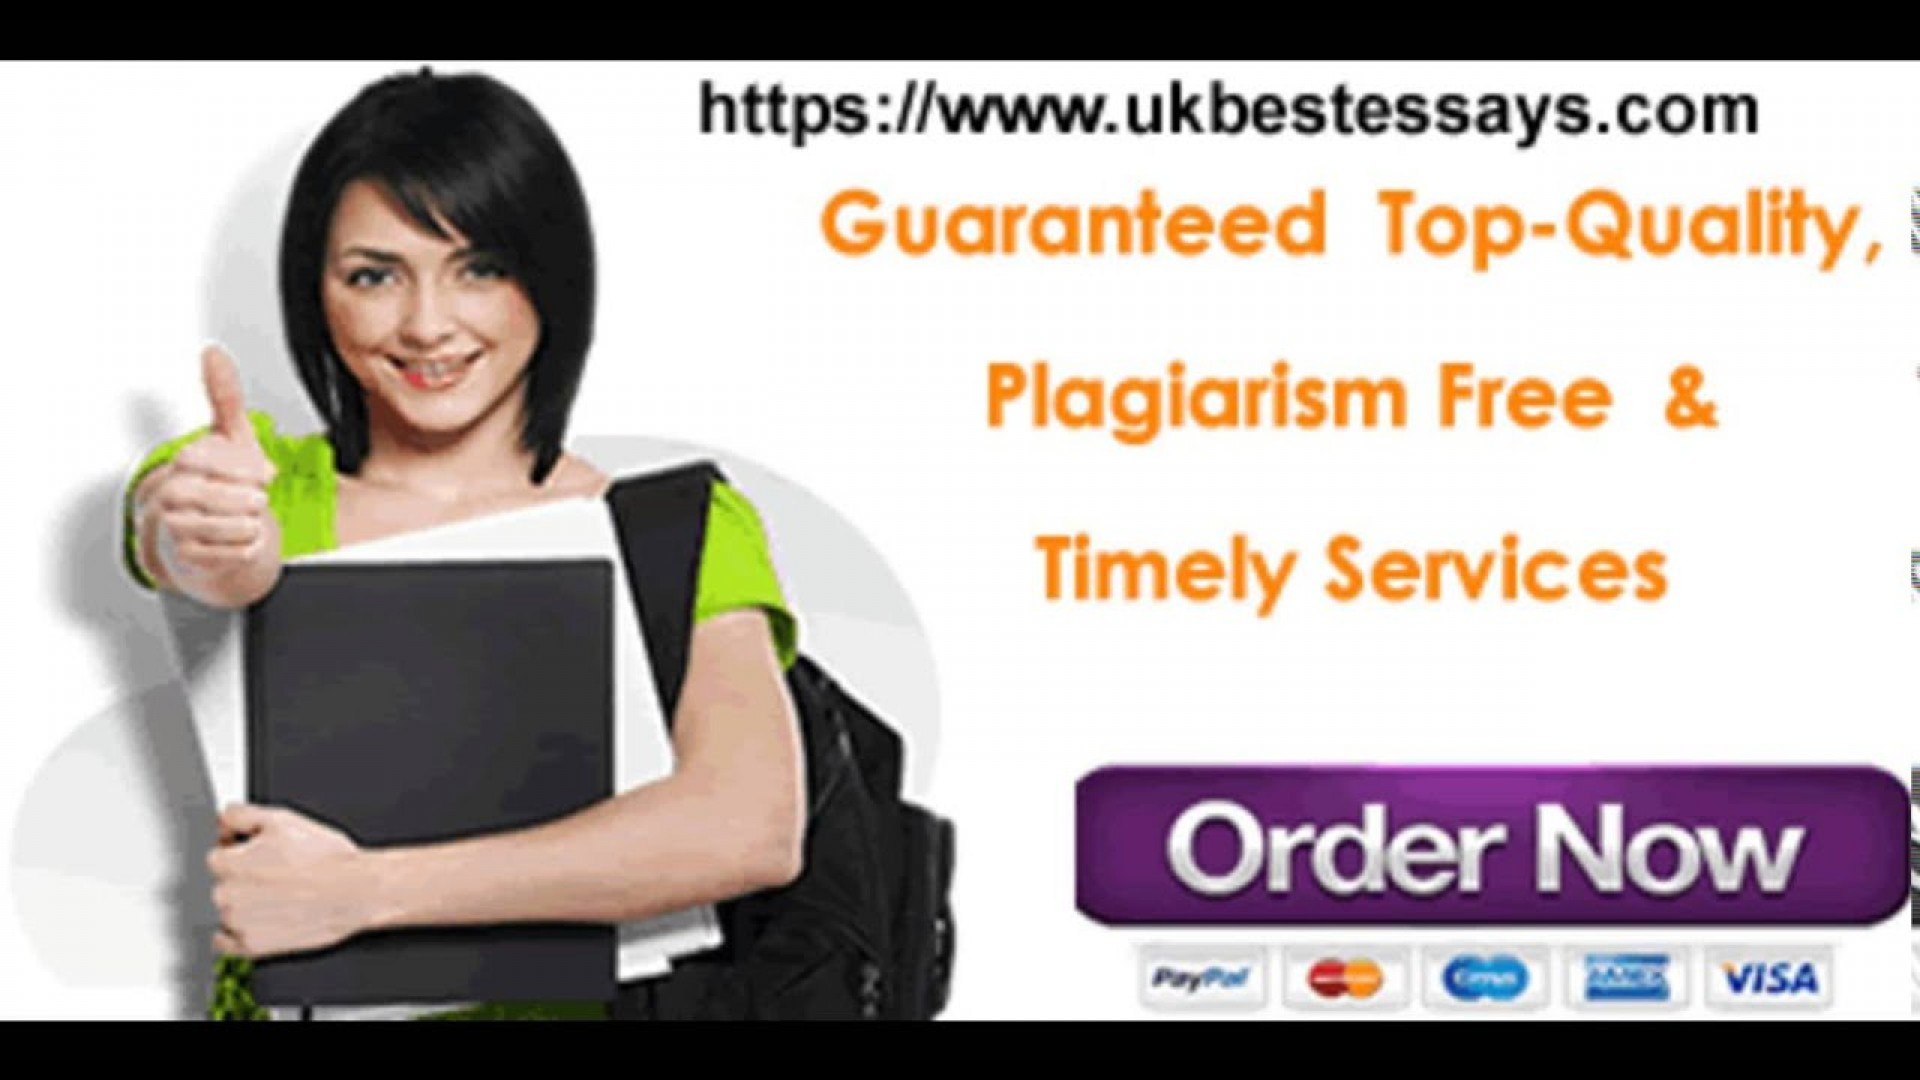 015 Essay Example Uk Best Essays Trusted Custom Writing Service Fast Maxresde Reviews Cheap Professional Help College Free In Awesome Writers Australia 1920